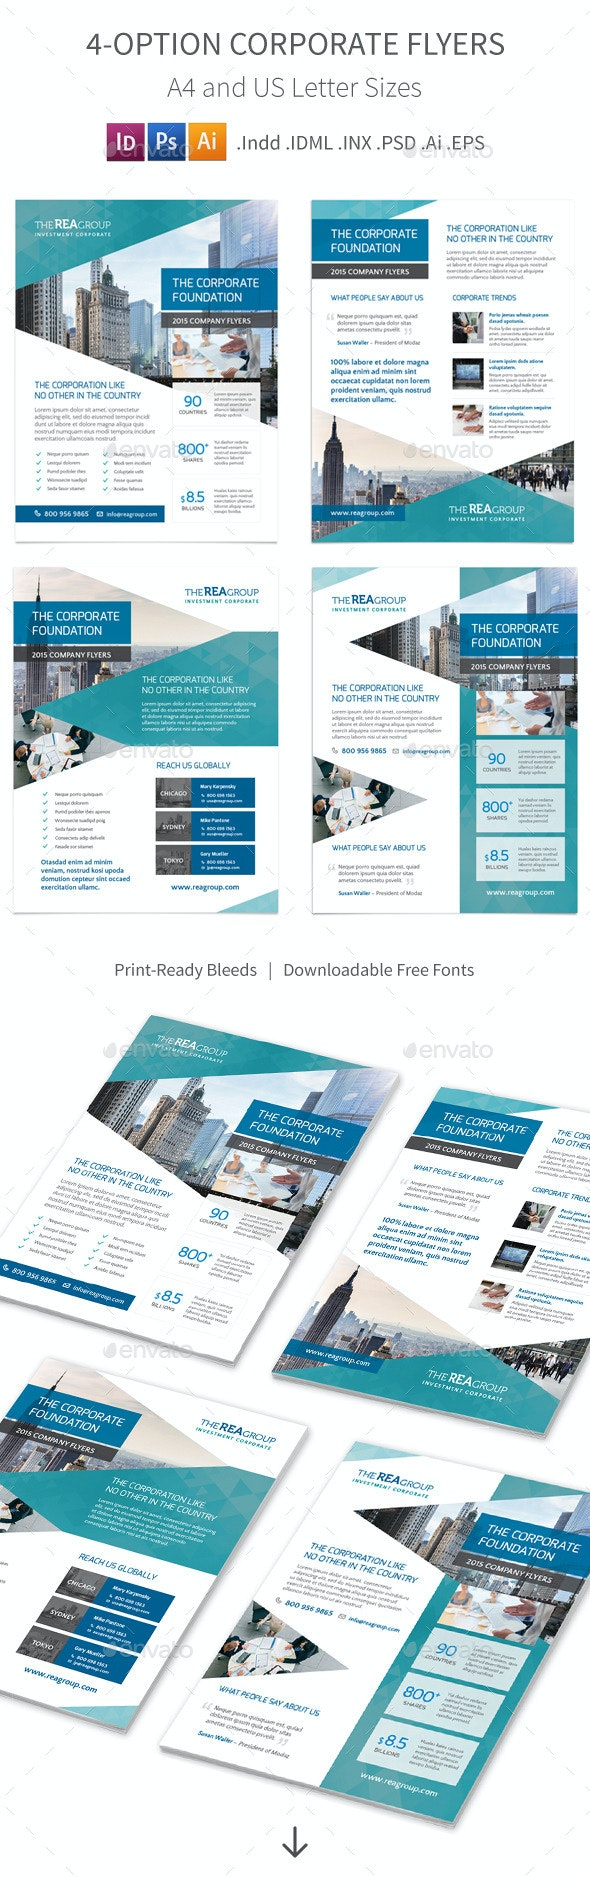 Corporate Flyers – 4 Options - Corporate Flyers